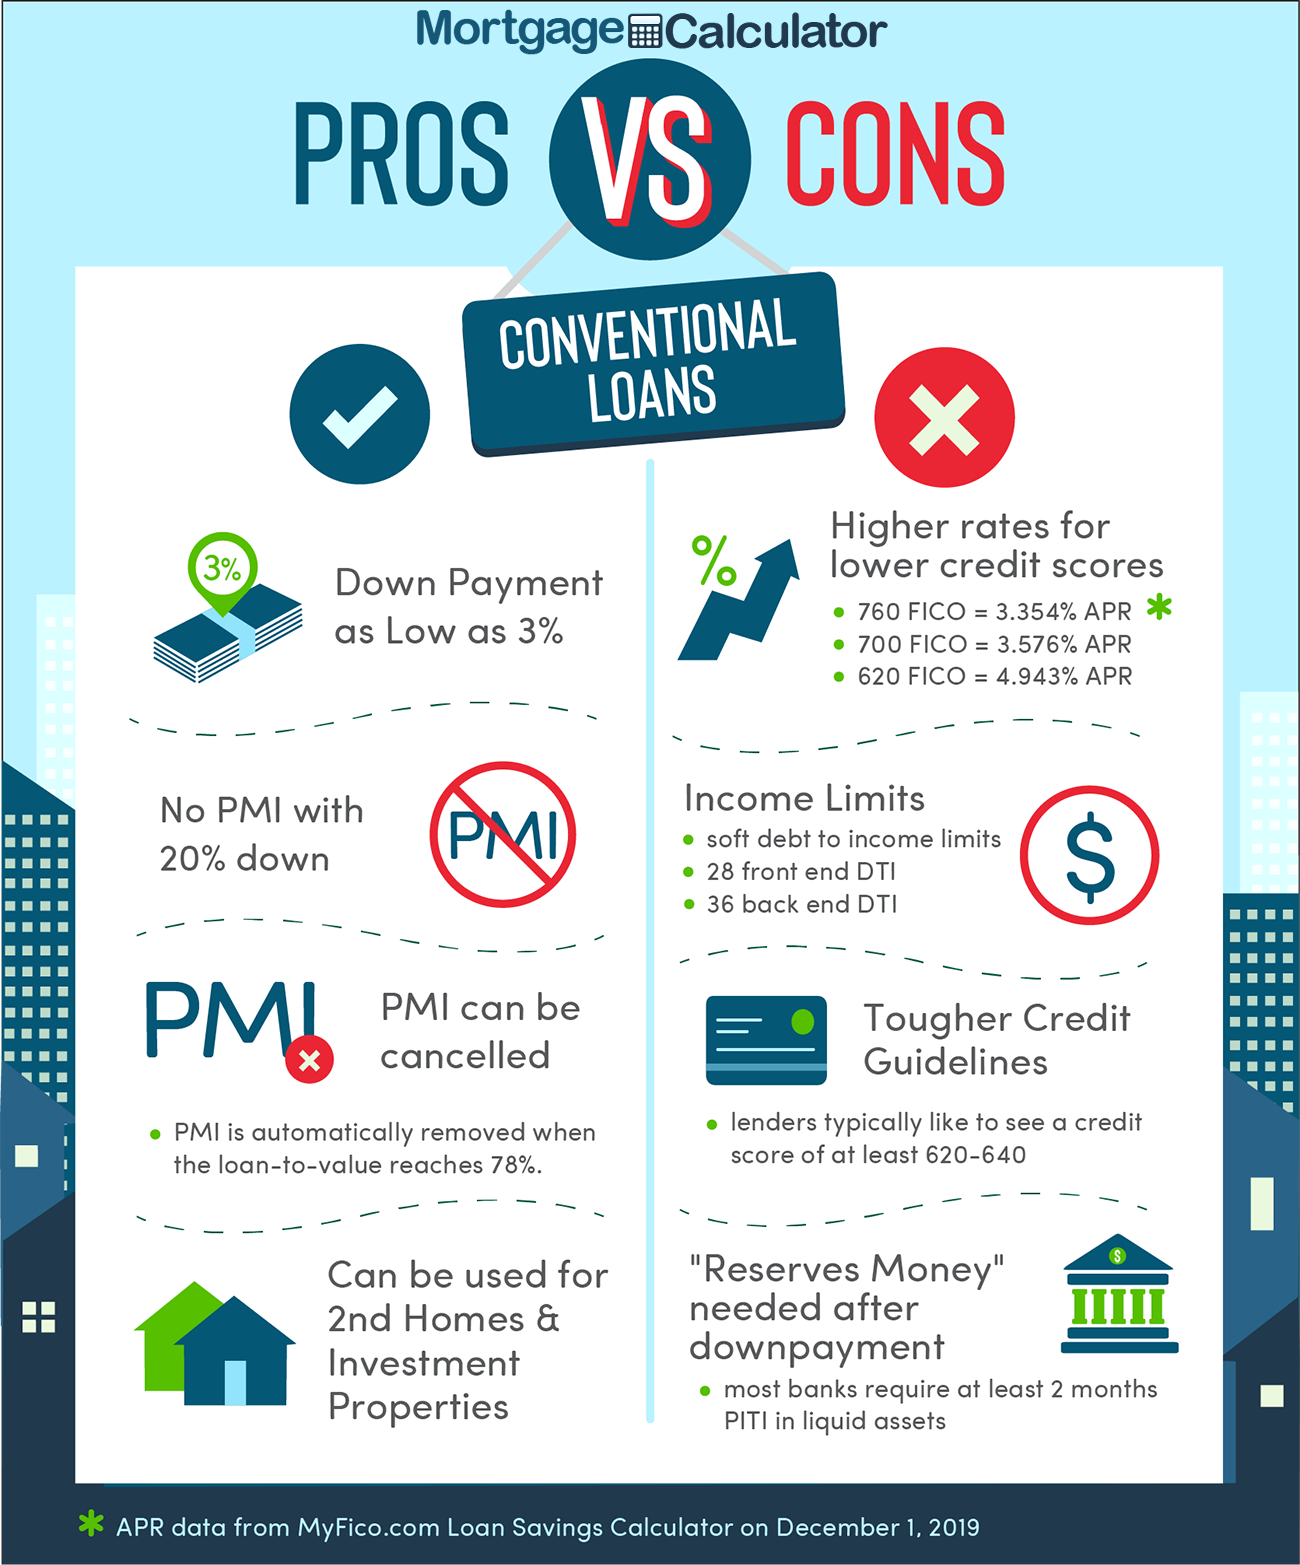 Conventional Loan Pros and Cons.